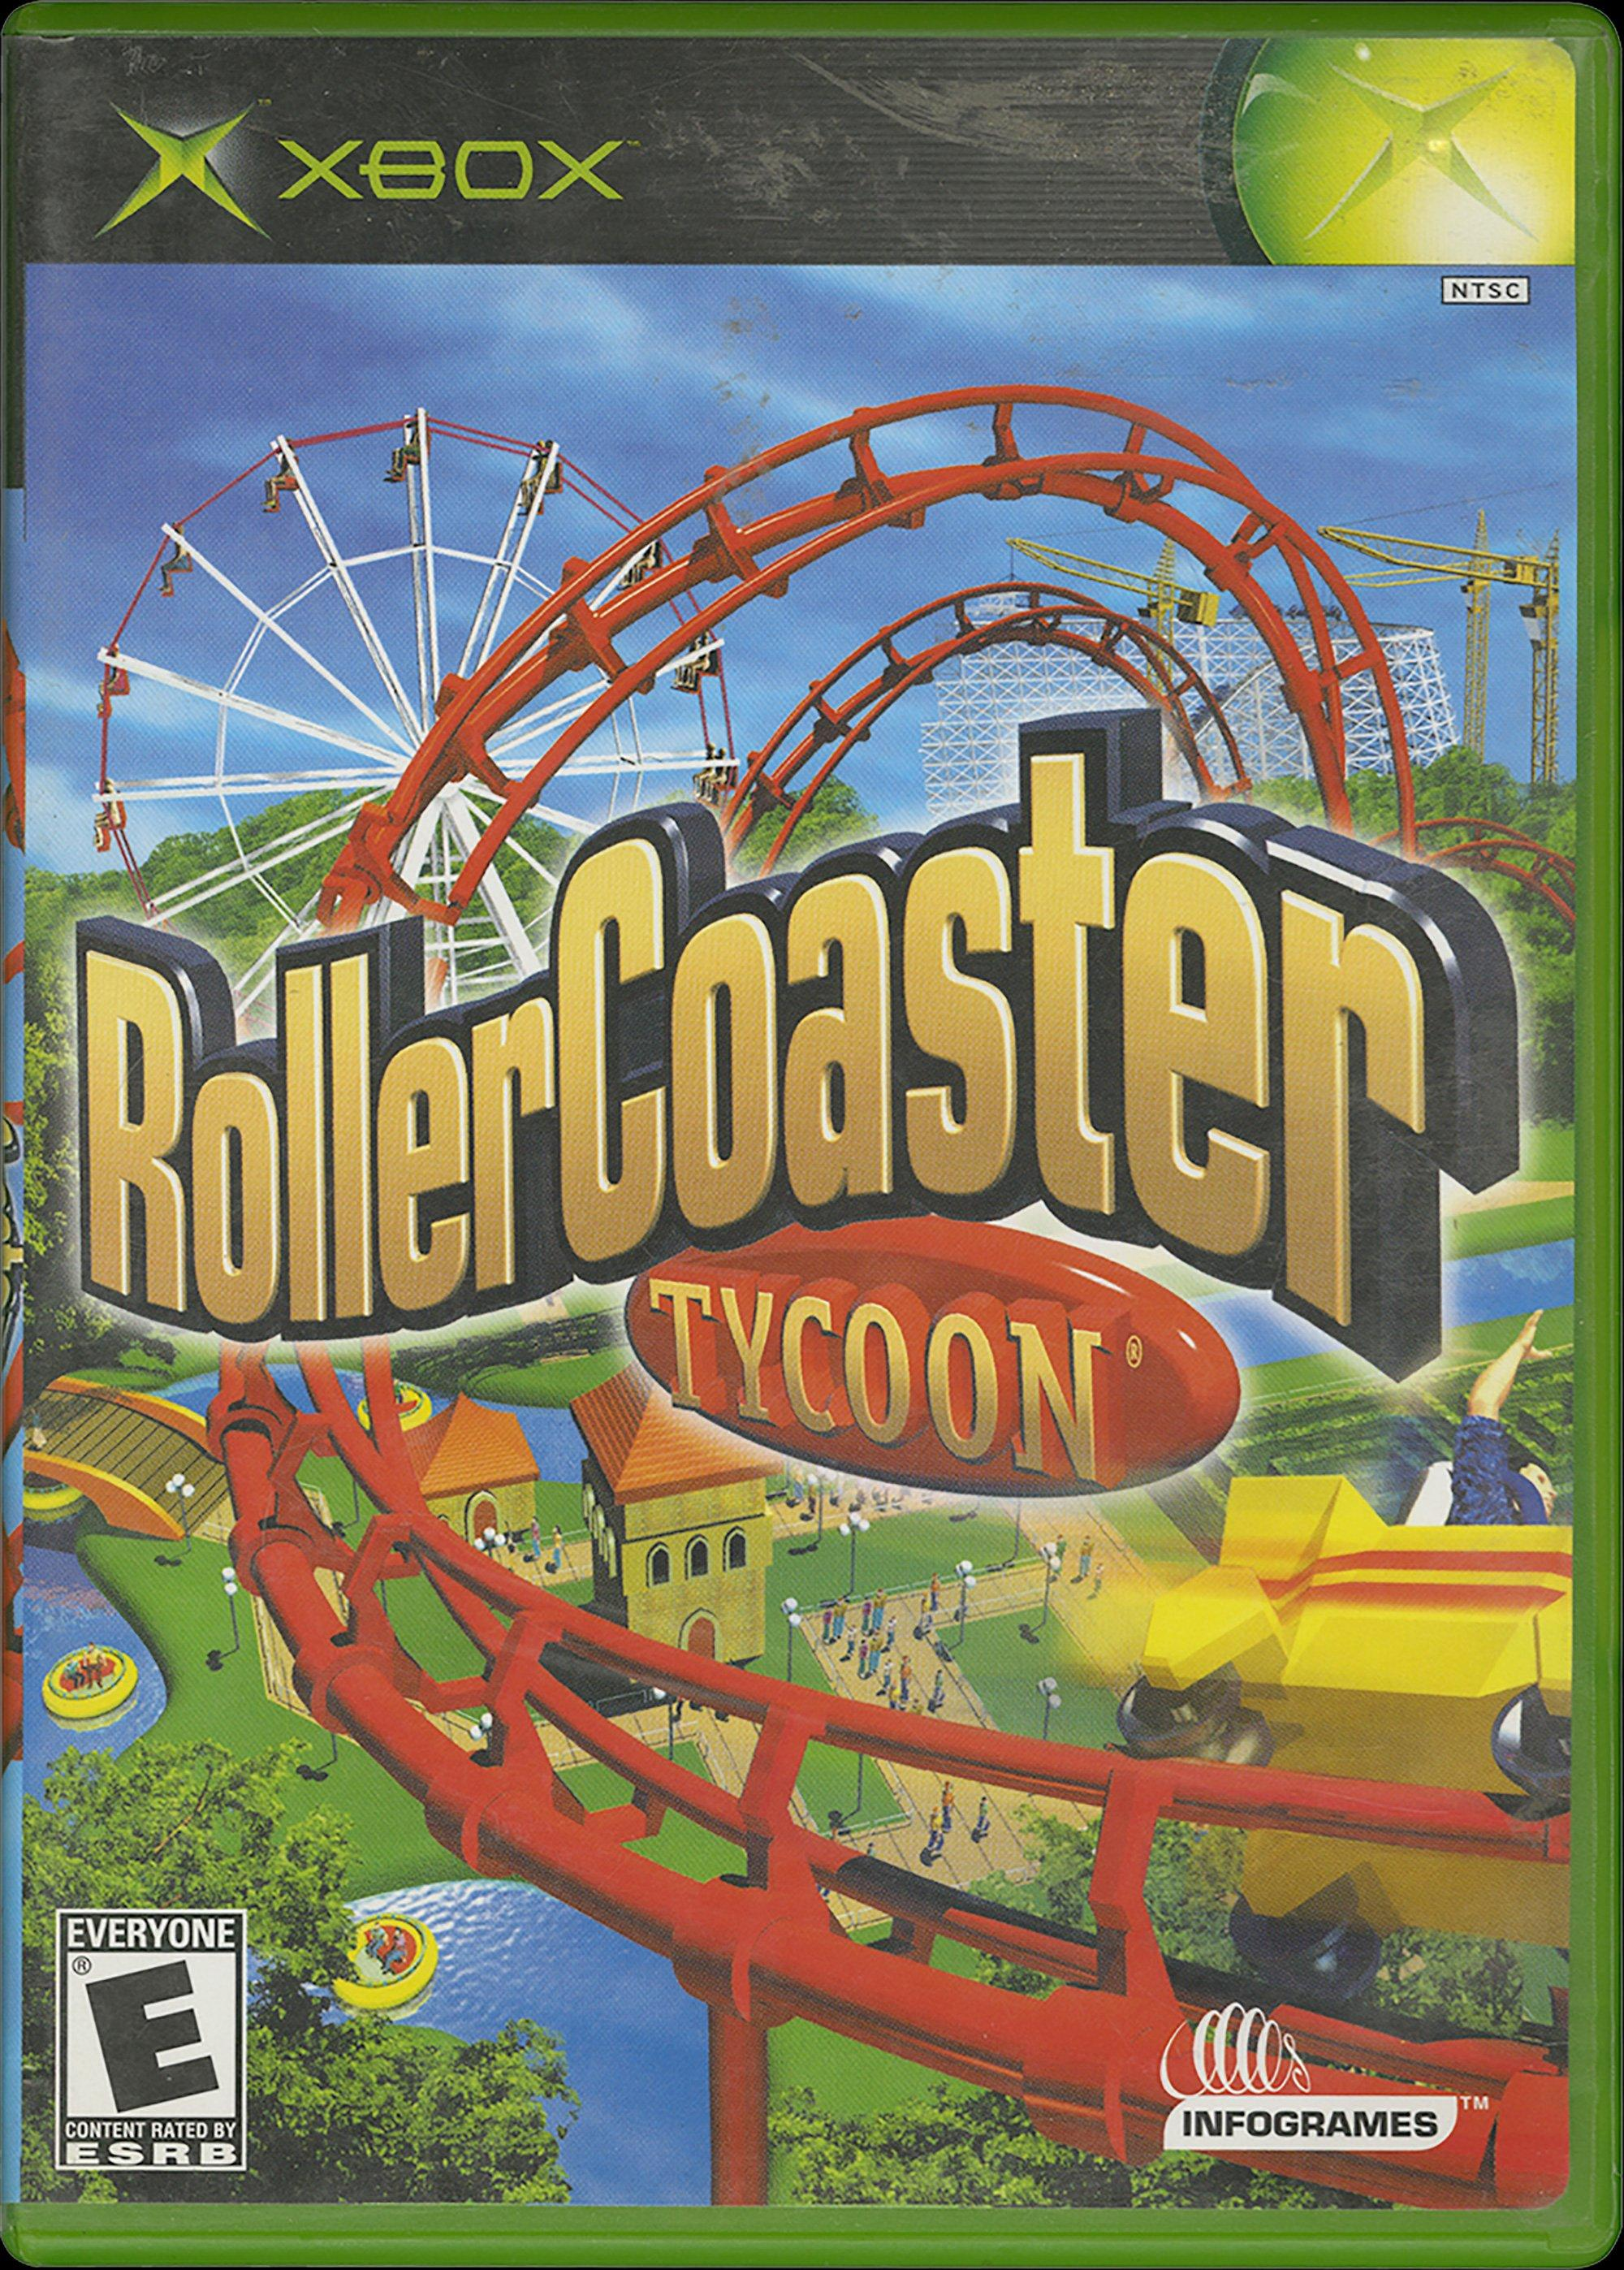 Rollercoaster tycoon classic mac free download